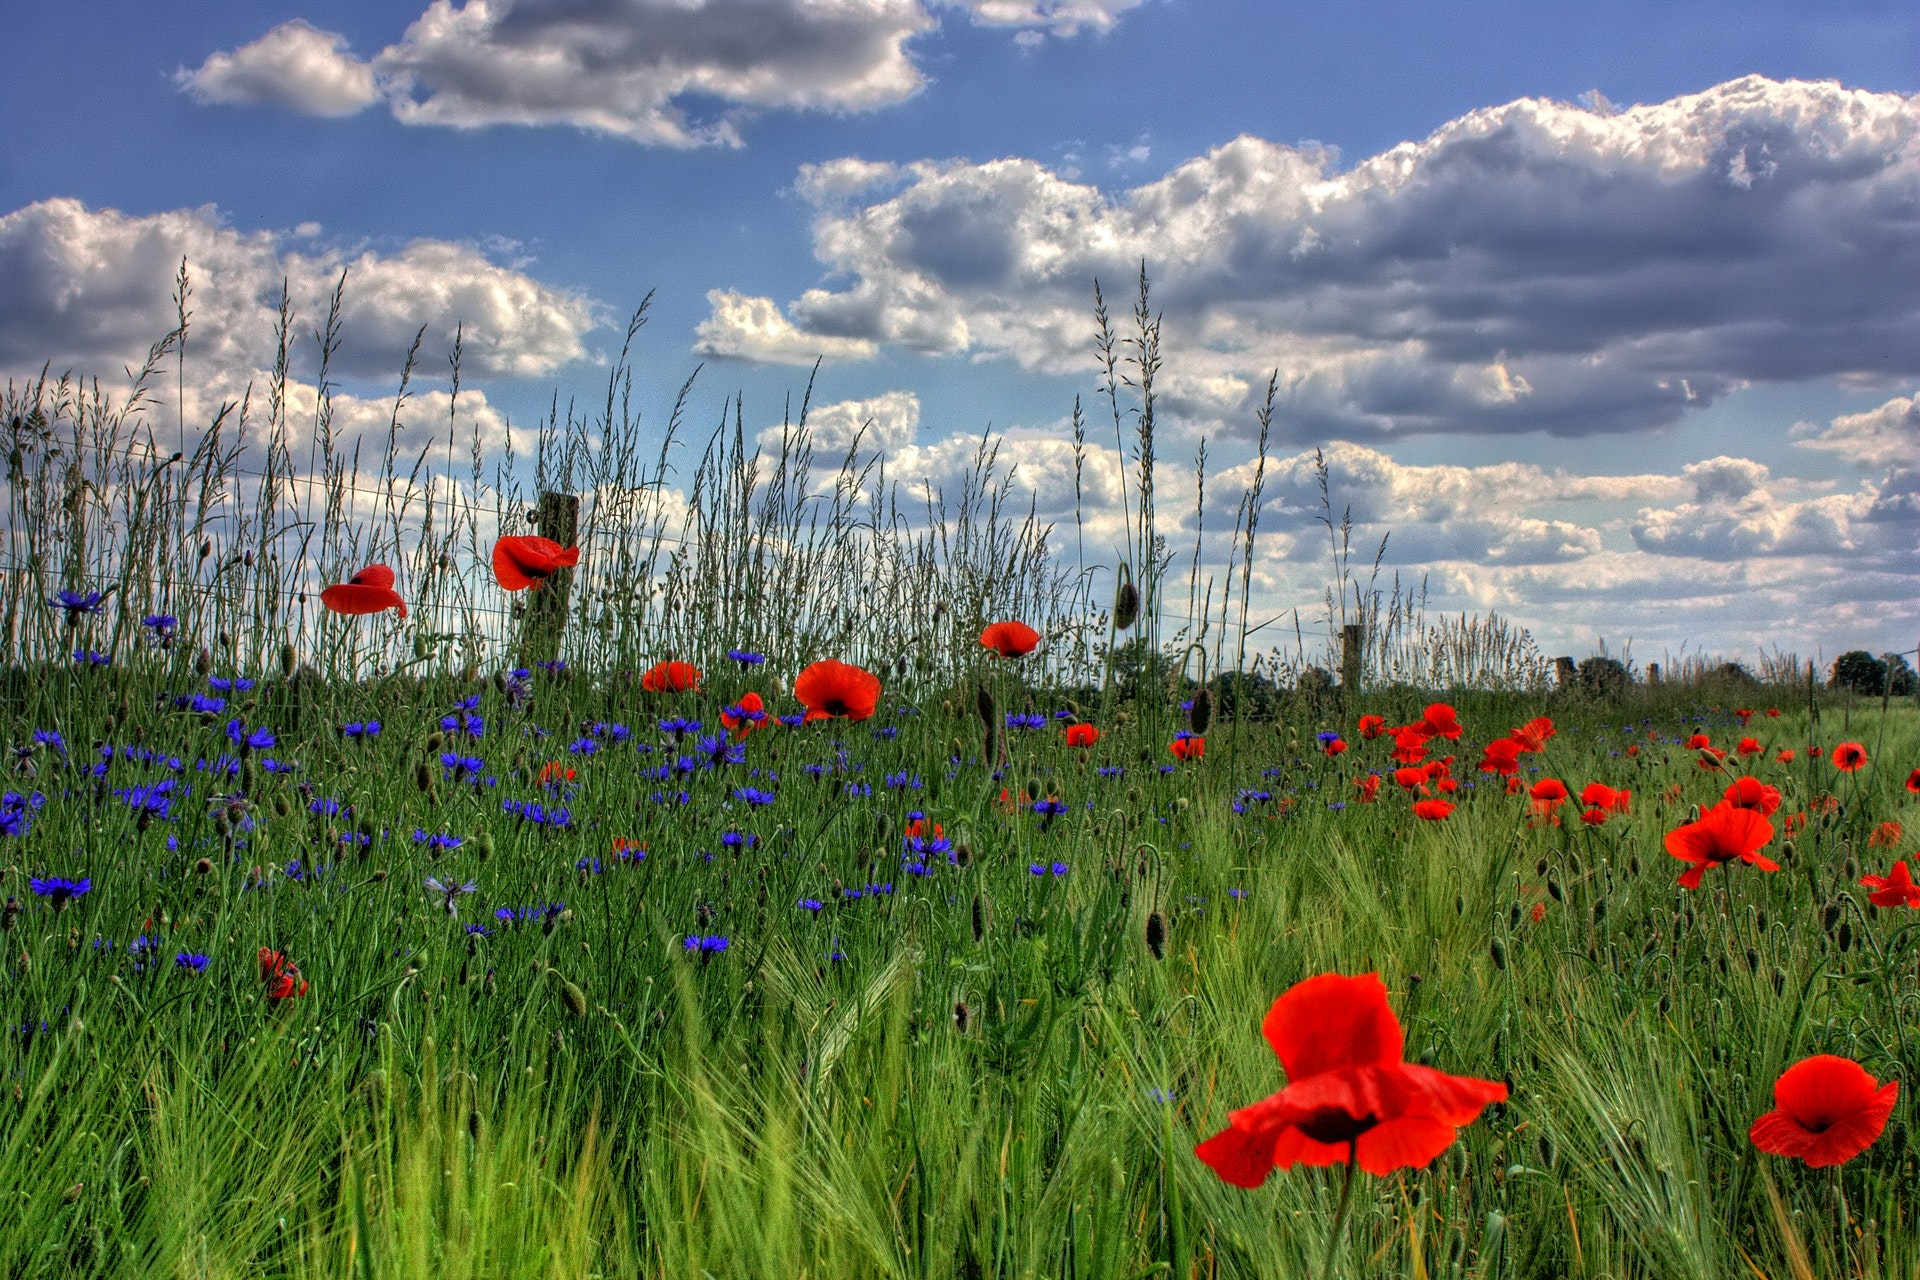 Red petaled flowers with blue petaled flowers on a field during daytime photo